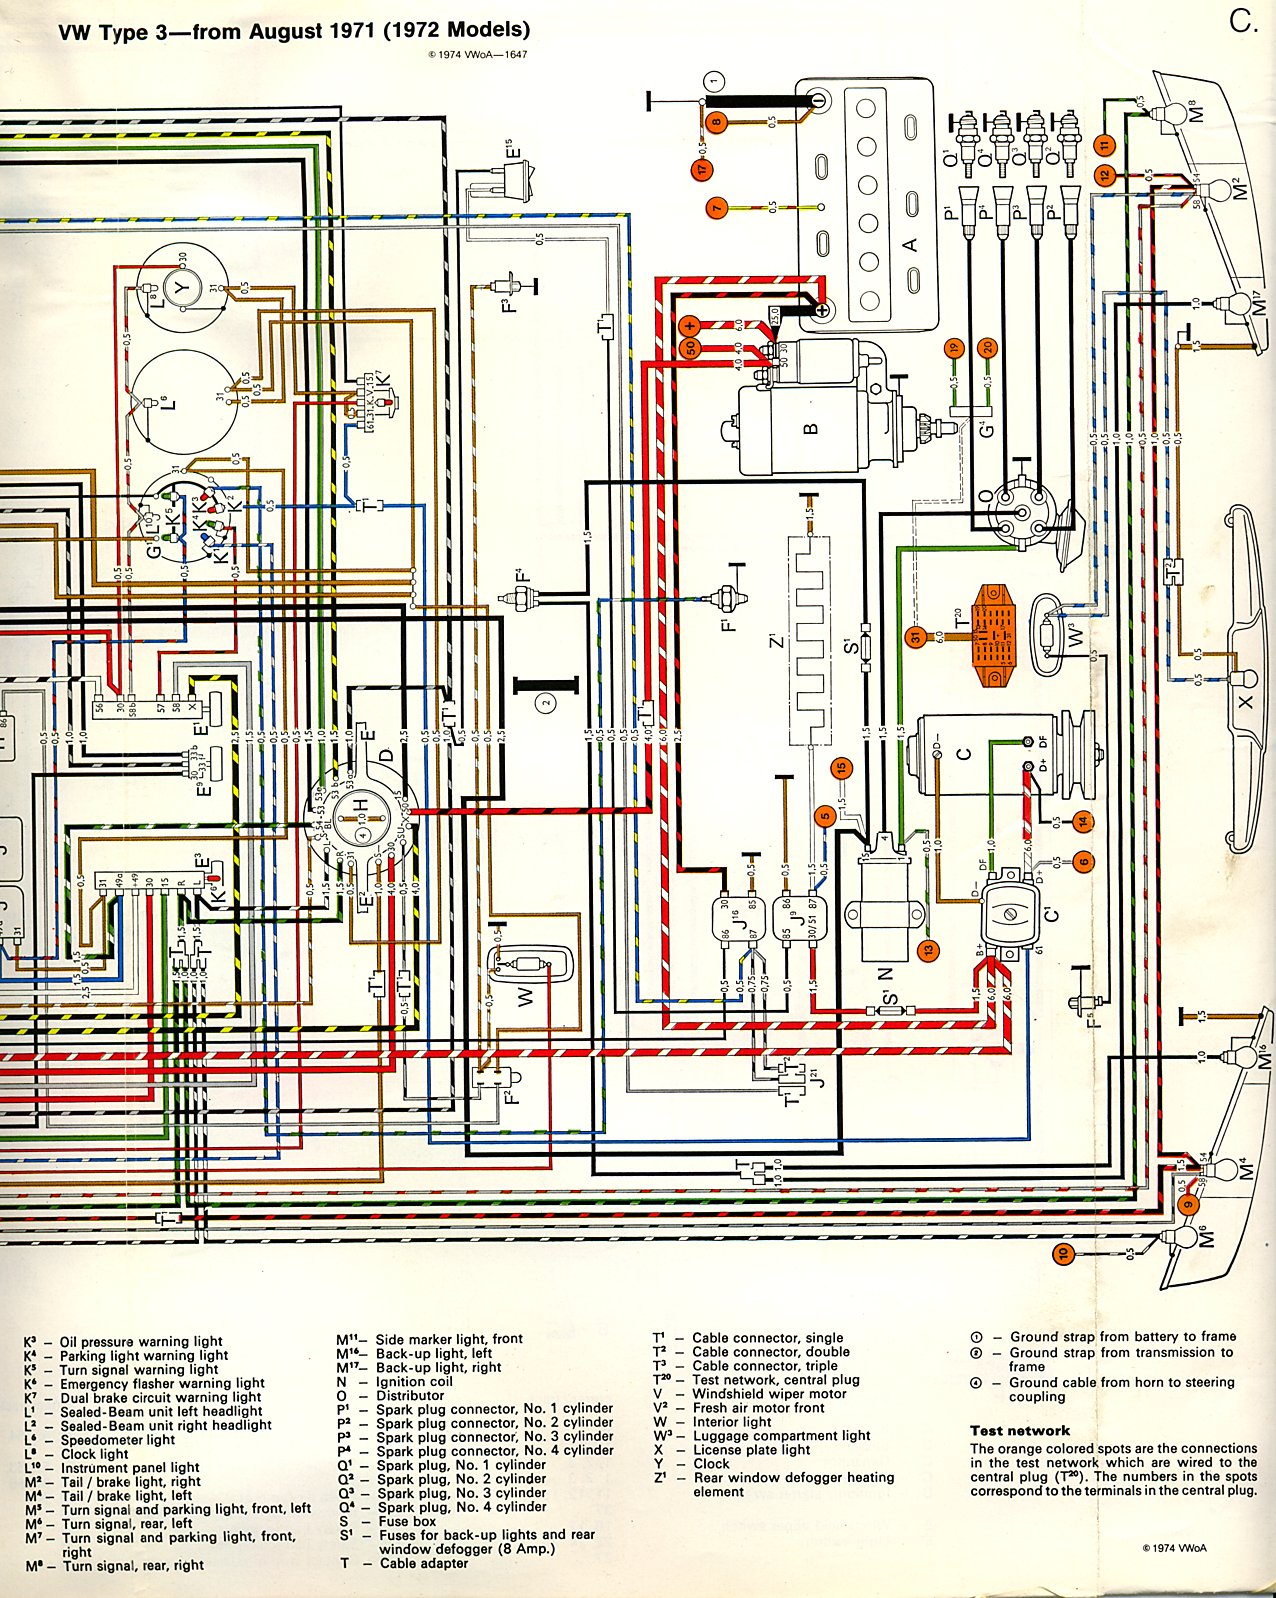 type3_72b thesamba com type 3 wiring diagrams wiring diagram for 1973 vw thing at alyssarenee.co